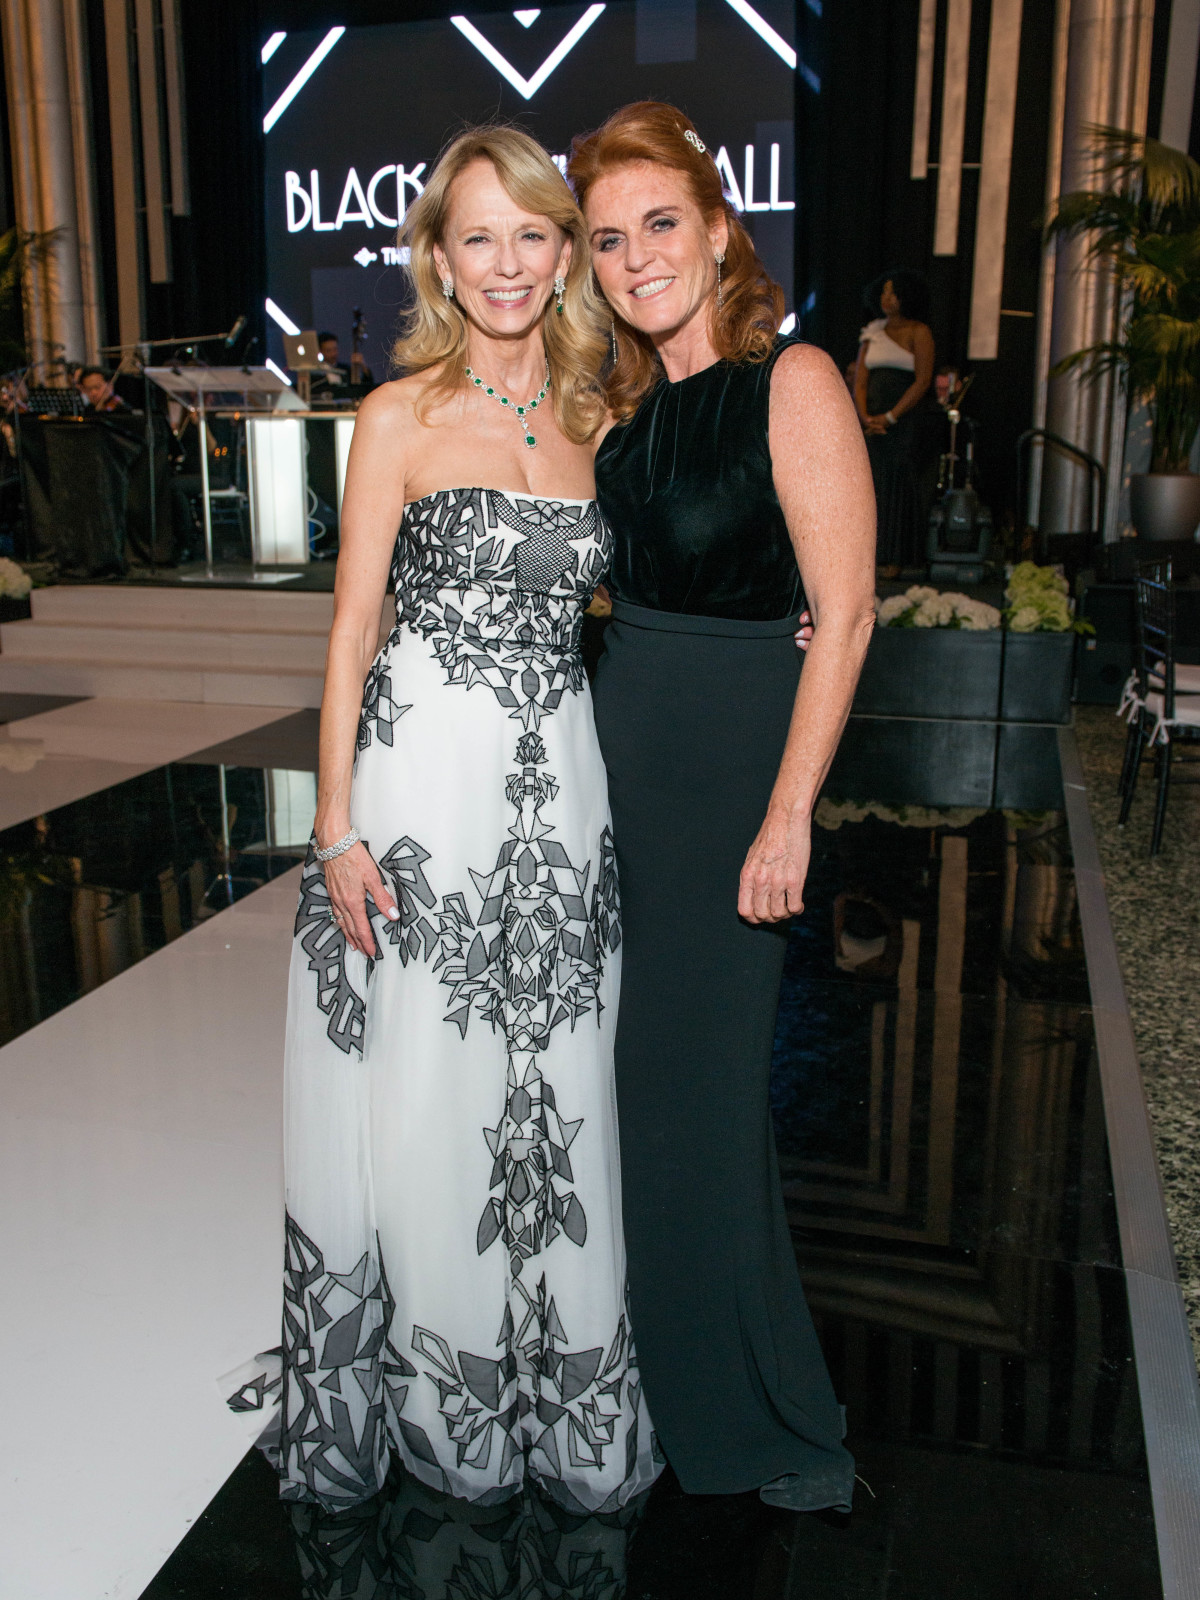 News, Shelby, MFAH gala gowns, Oct. 2015 Susan Sarofim in Naeem Khan, Sarah Ferguson in Max Mara